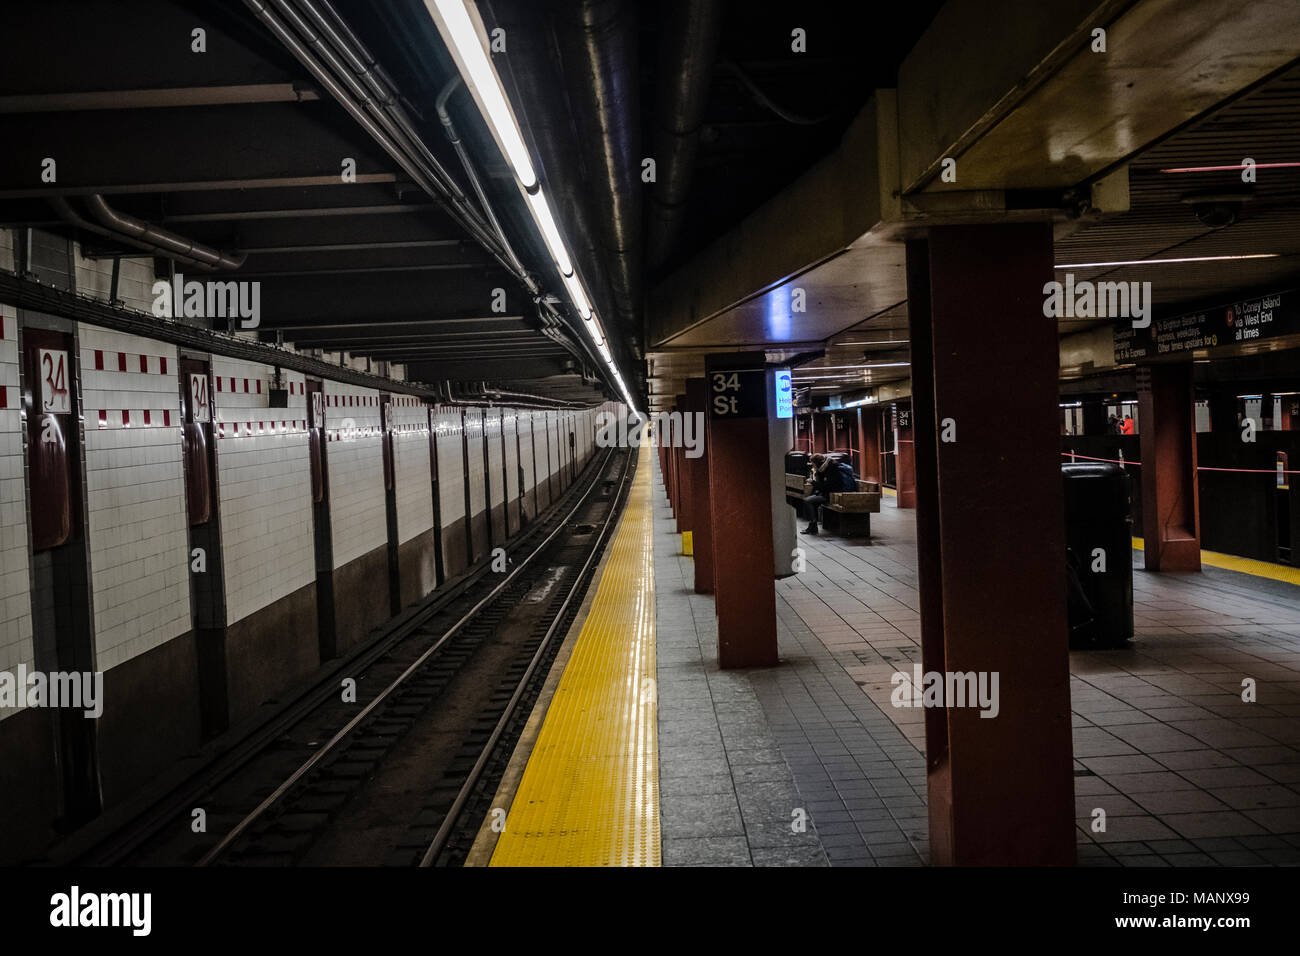 Metro New York - the longest subway system in the world